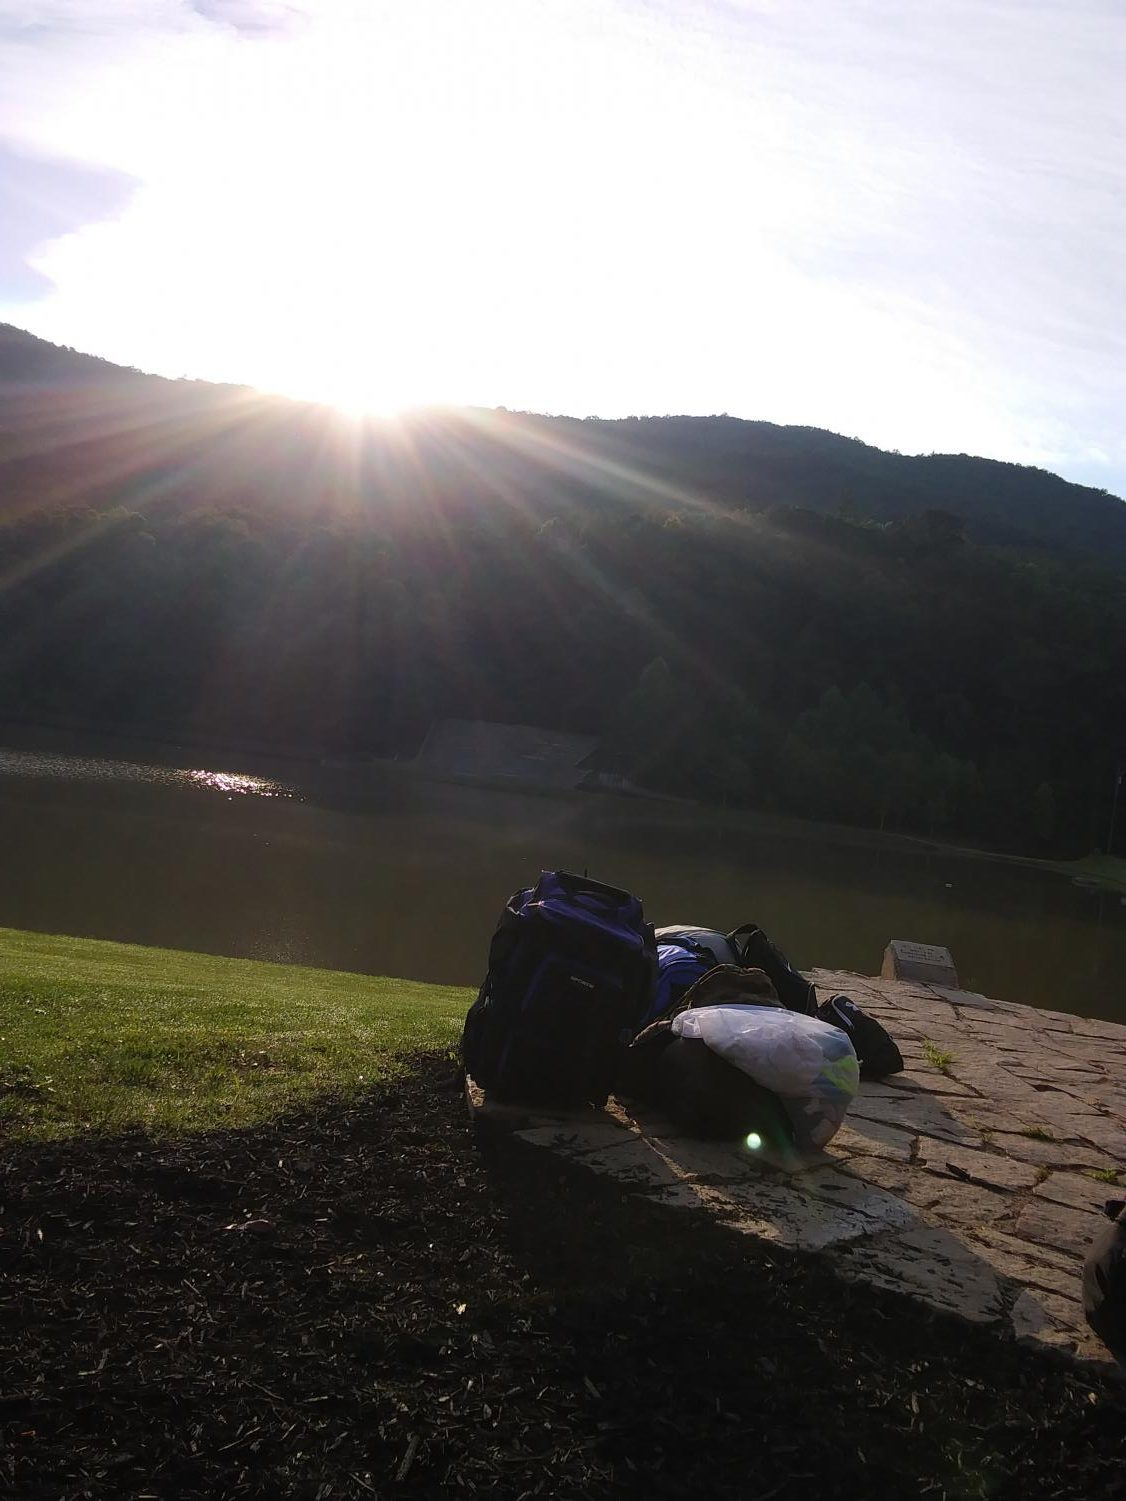 Sunrise in the valley. Outside of the Admin building, a camper's bag waits to be picked up and taken home after a week of adventure.